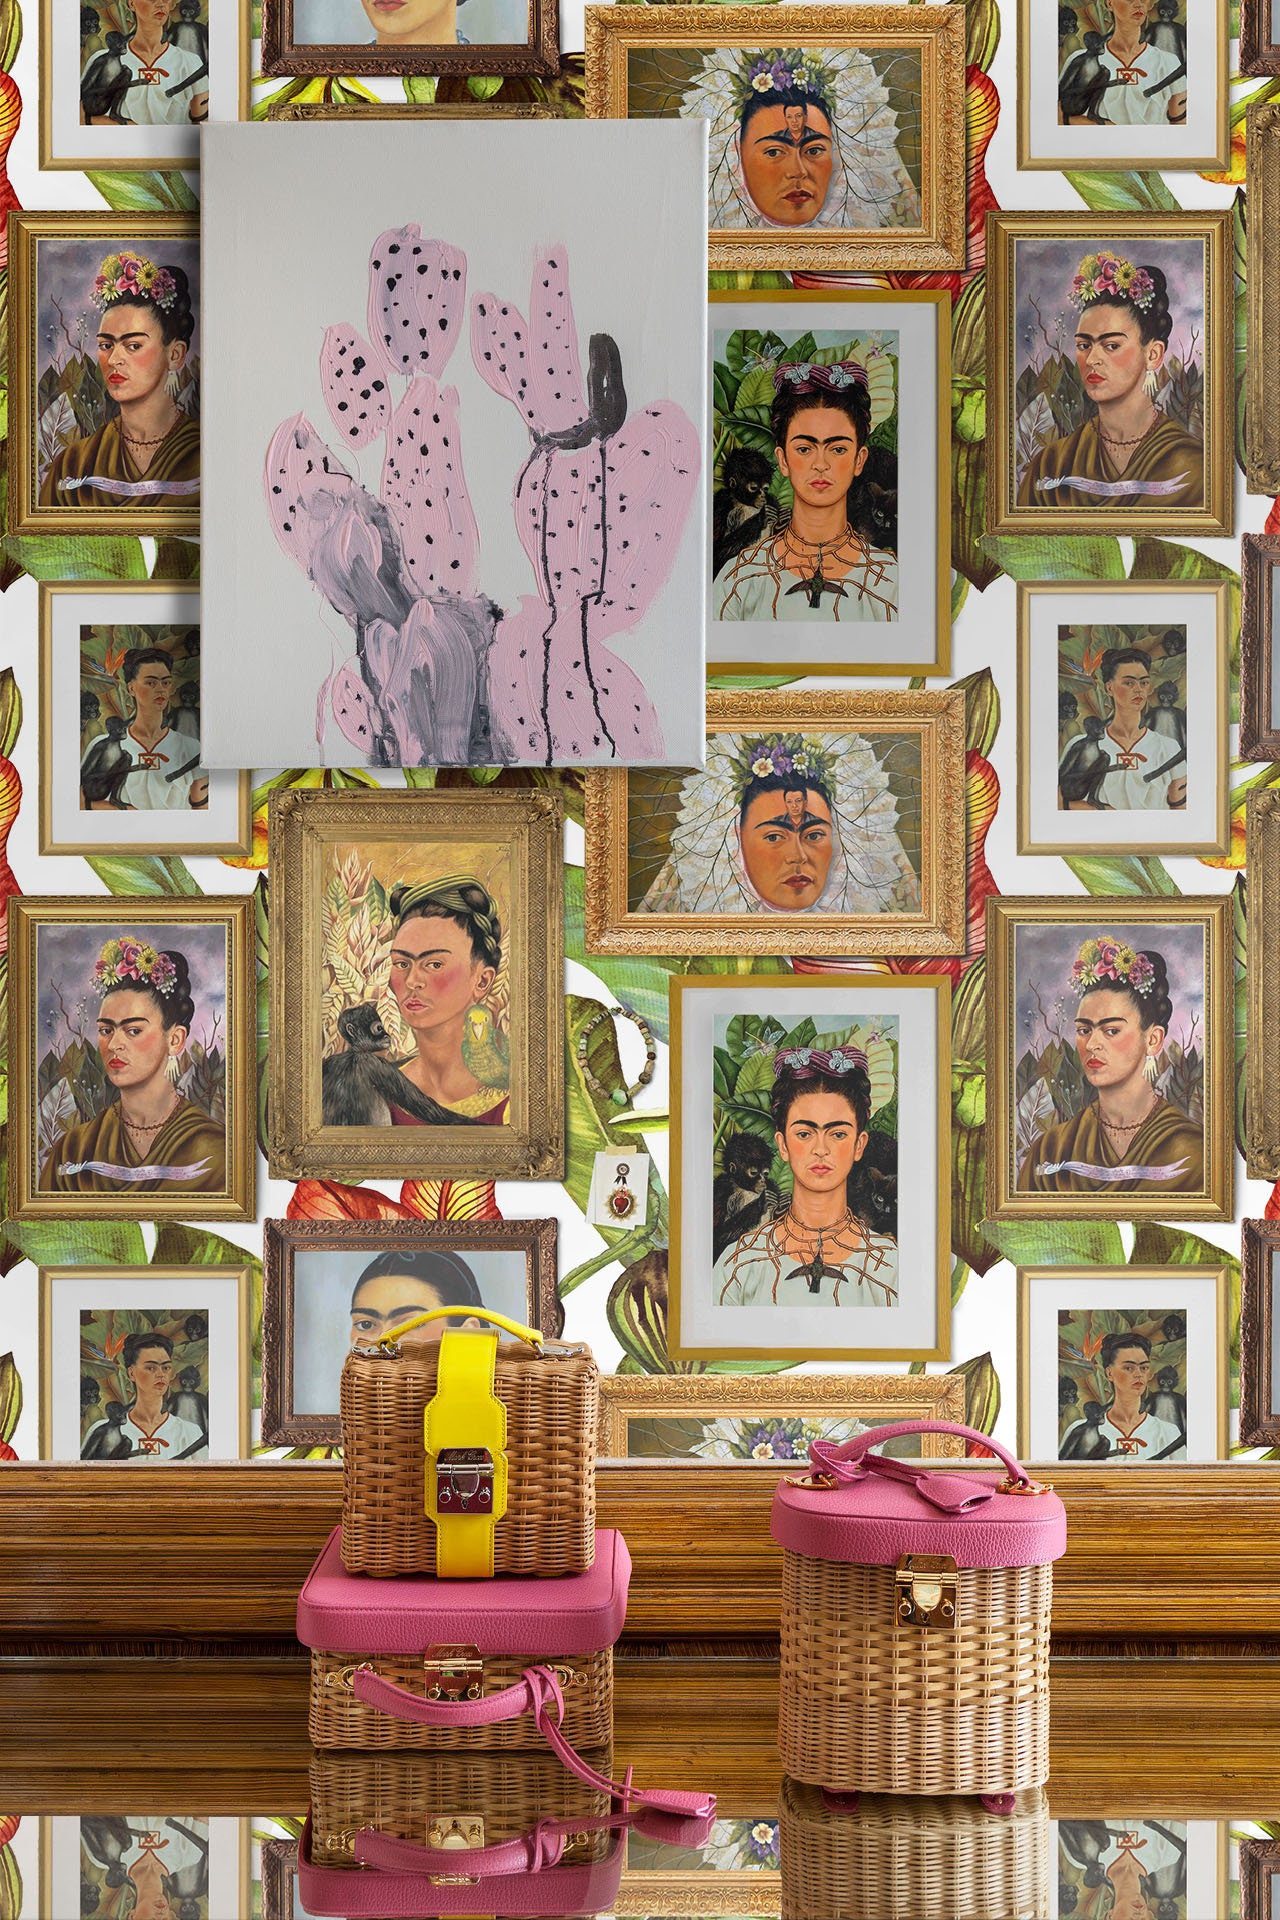 ... frida kahlo wall art. gallery photo ...